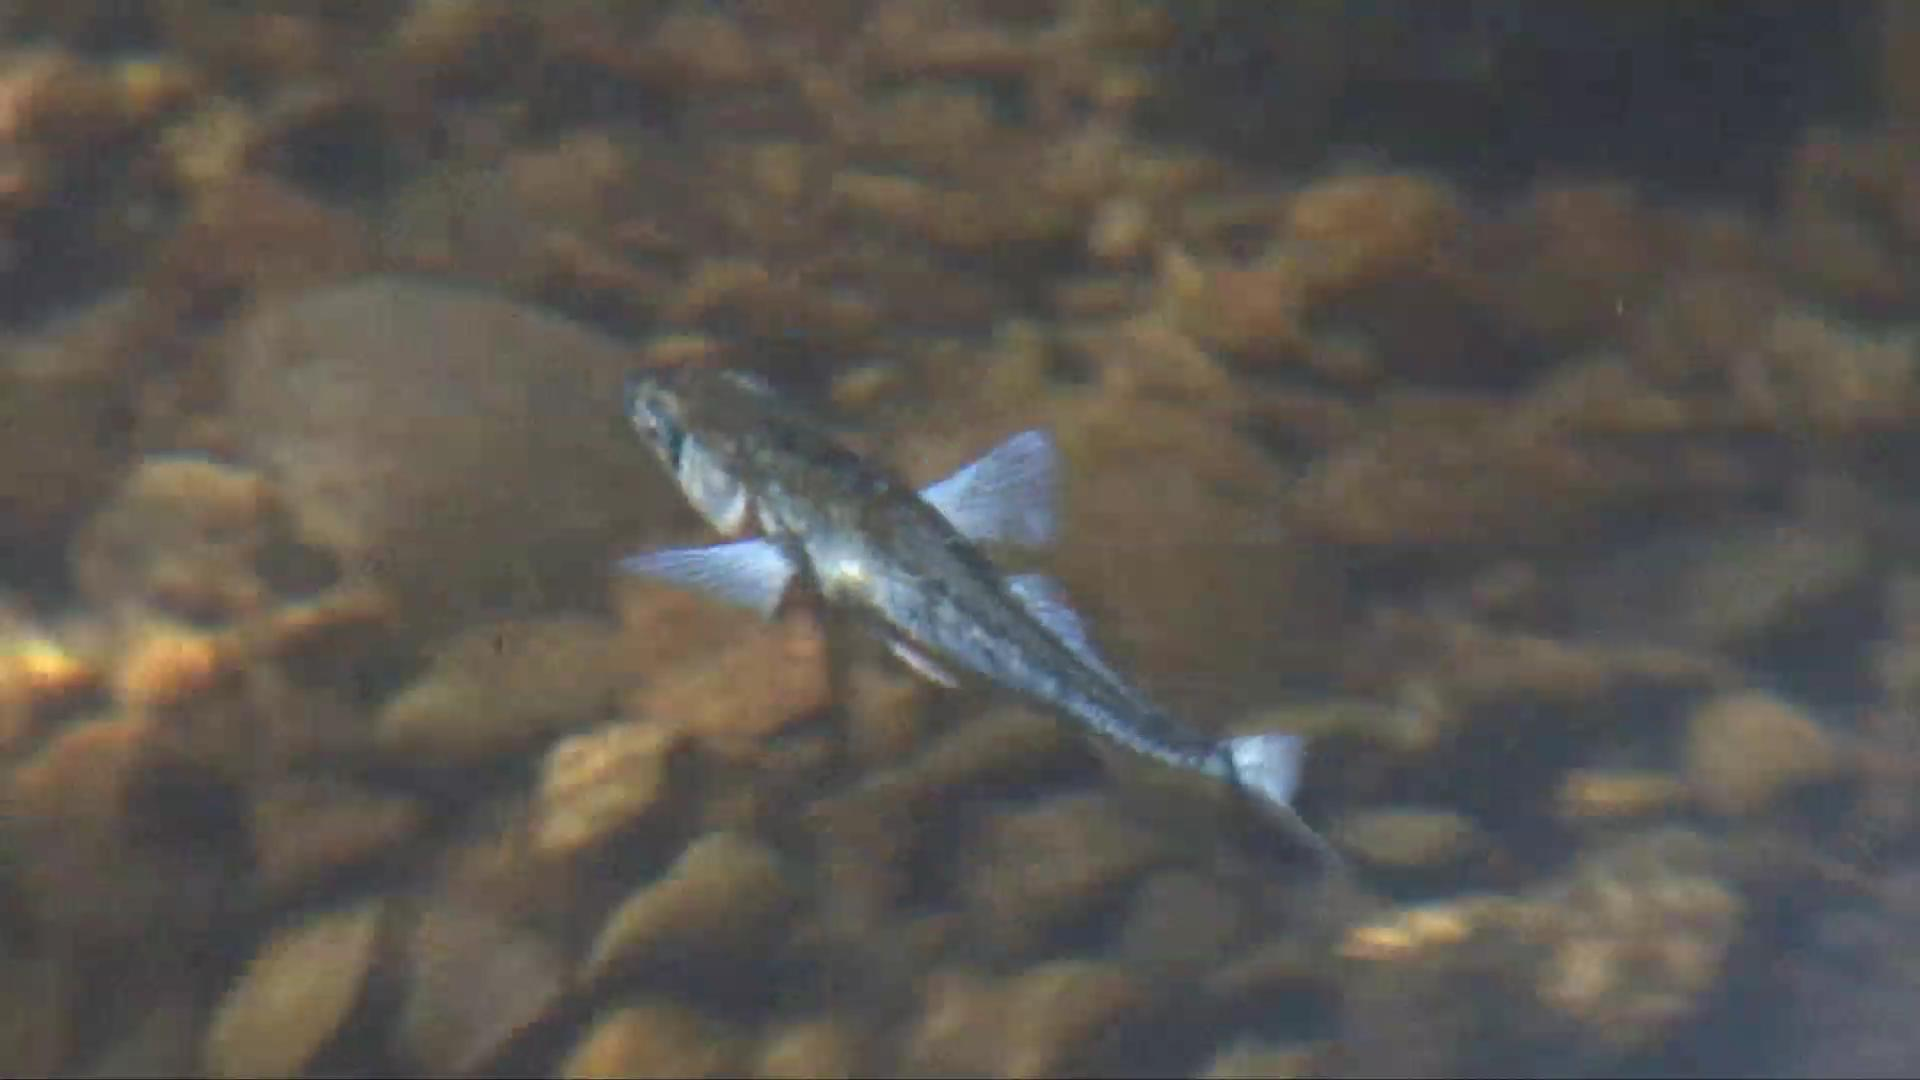 New Jersey to residents: don't eat fish from sewers